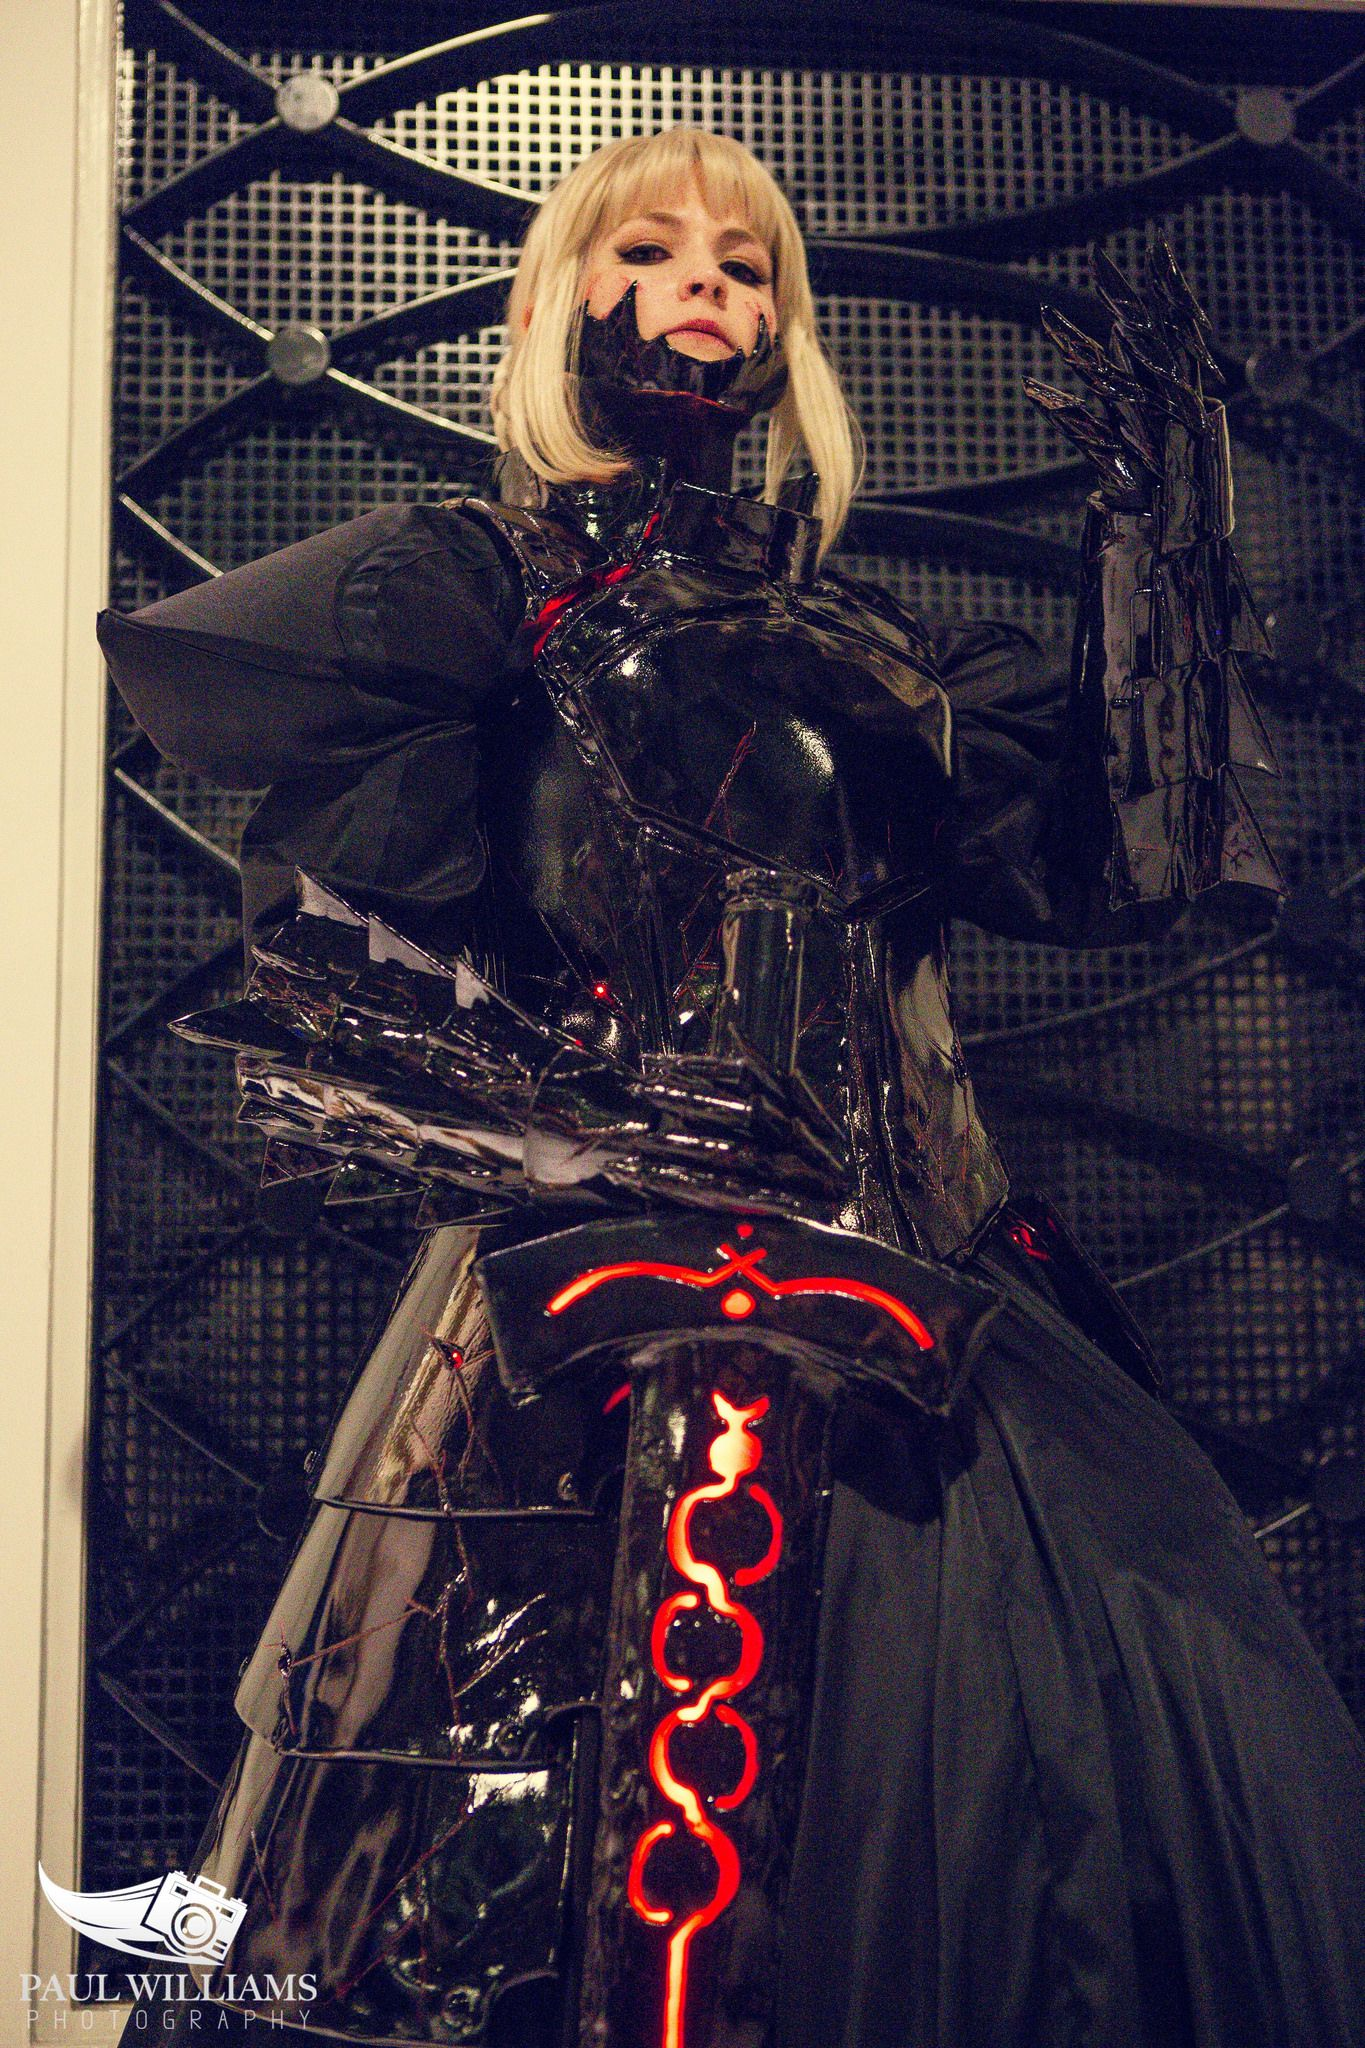 Saber Alter cosplay by Nova Star Cosplay. Photo by Paul